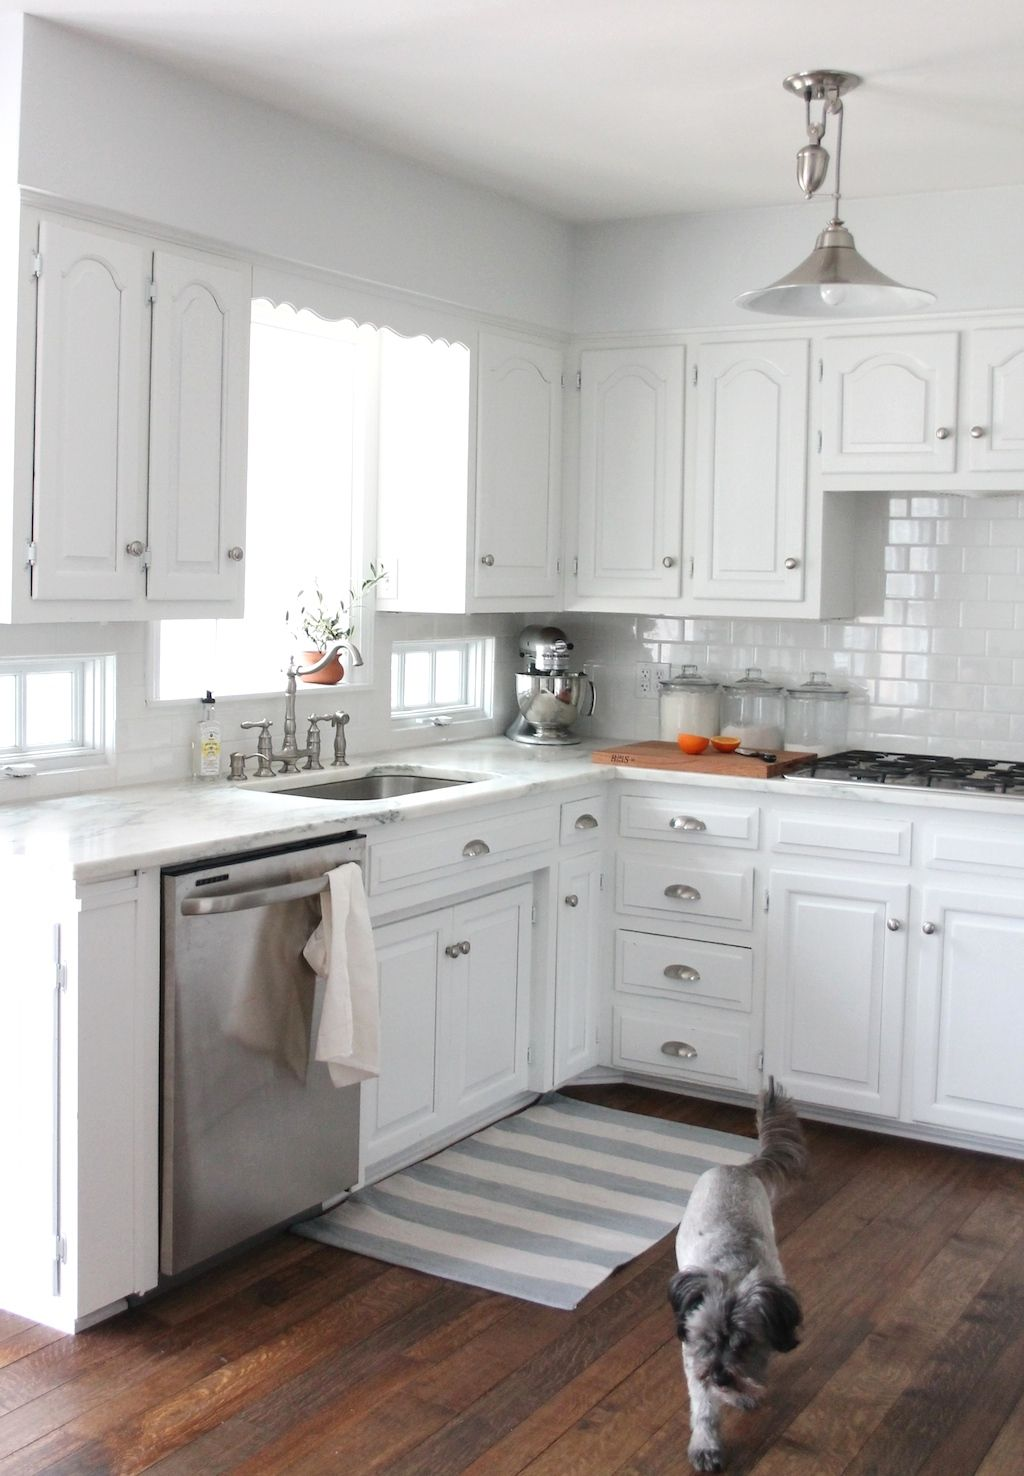 We did it our kitchen remodel easy diy projects and All white kitchen ideas